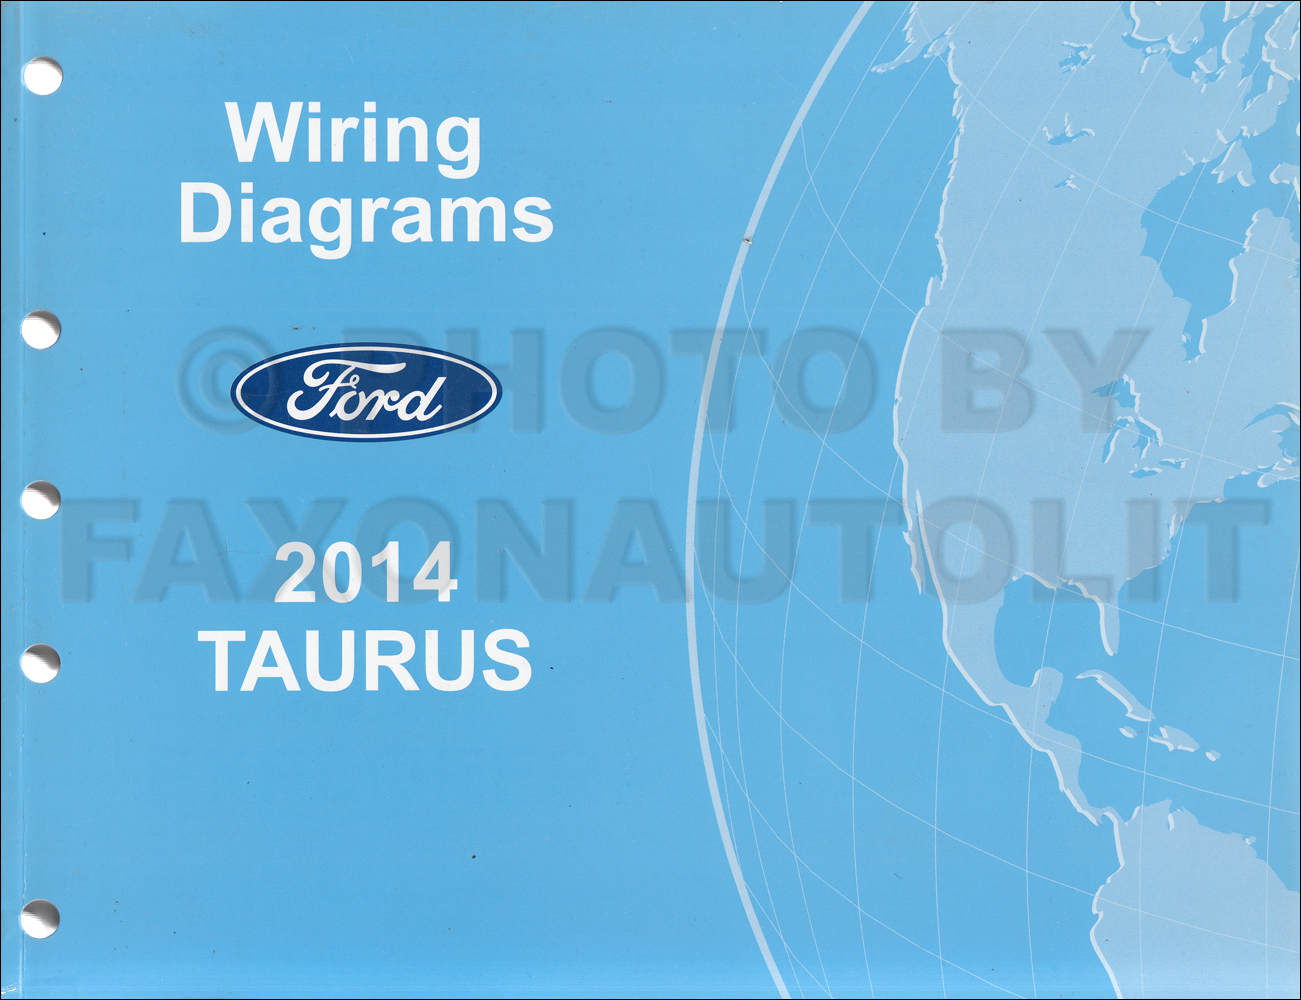 hight resolution of 2014 ford taurus wiring diagram manual original 2013 camaro wiring diagram wiring diagram for 2013 taurus sho